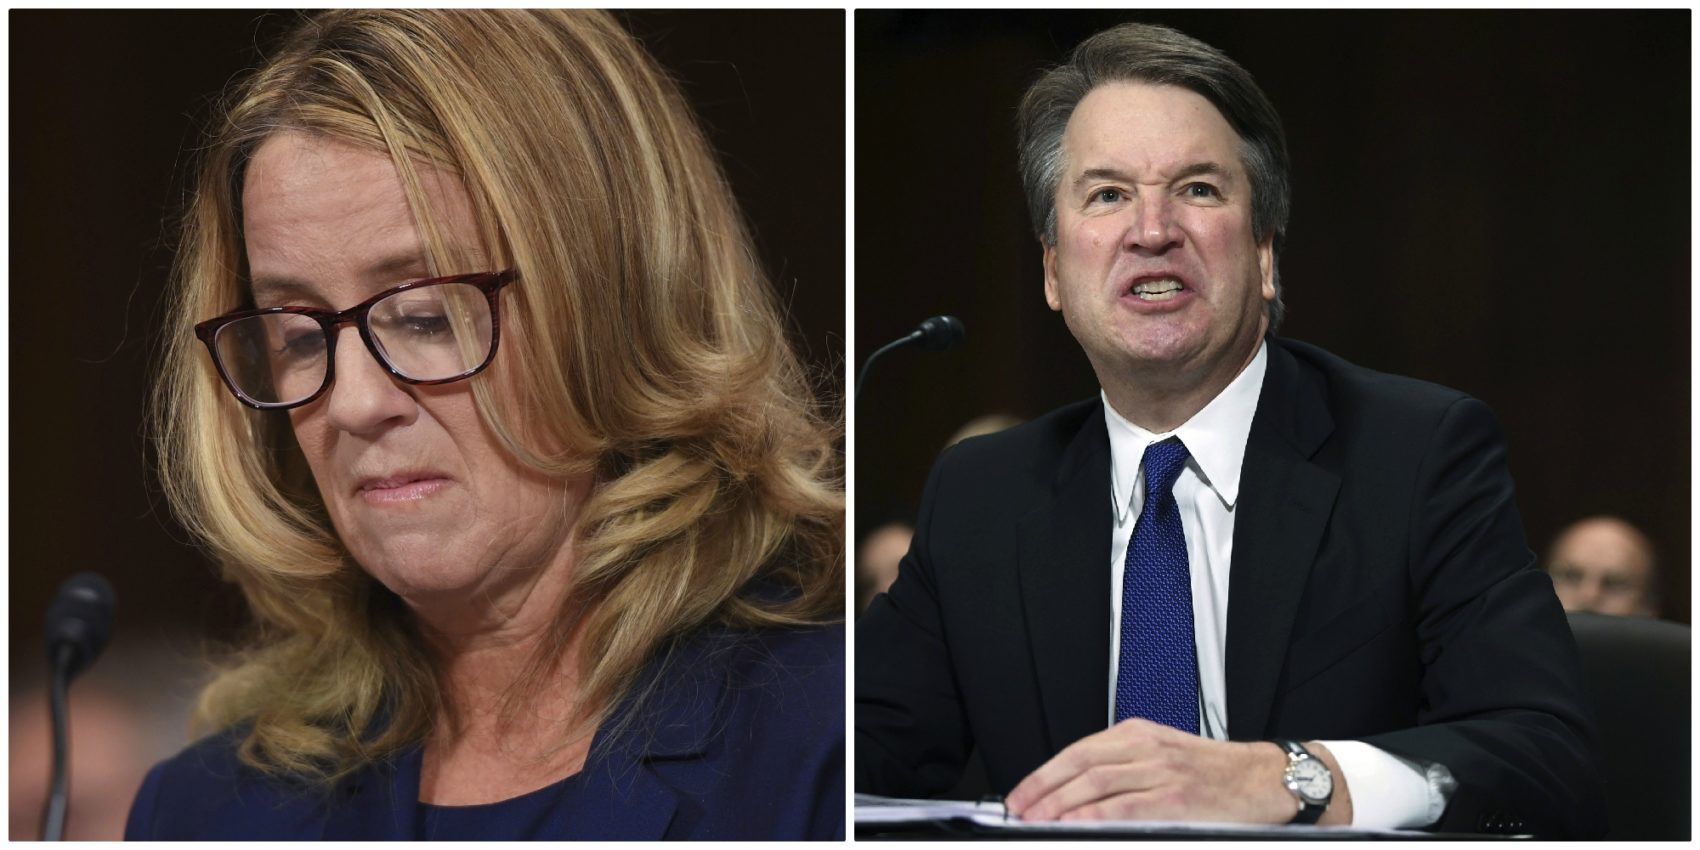 Christine Blasey Ford, left, and Supreme Court nominee Judge Brett Kavanaugh testify before the Senate Judiciary Committee on Capitol Hill in Washington, Thursday, Sept. 27, 2018. (AP)